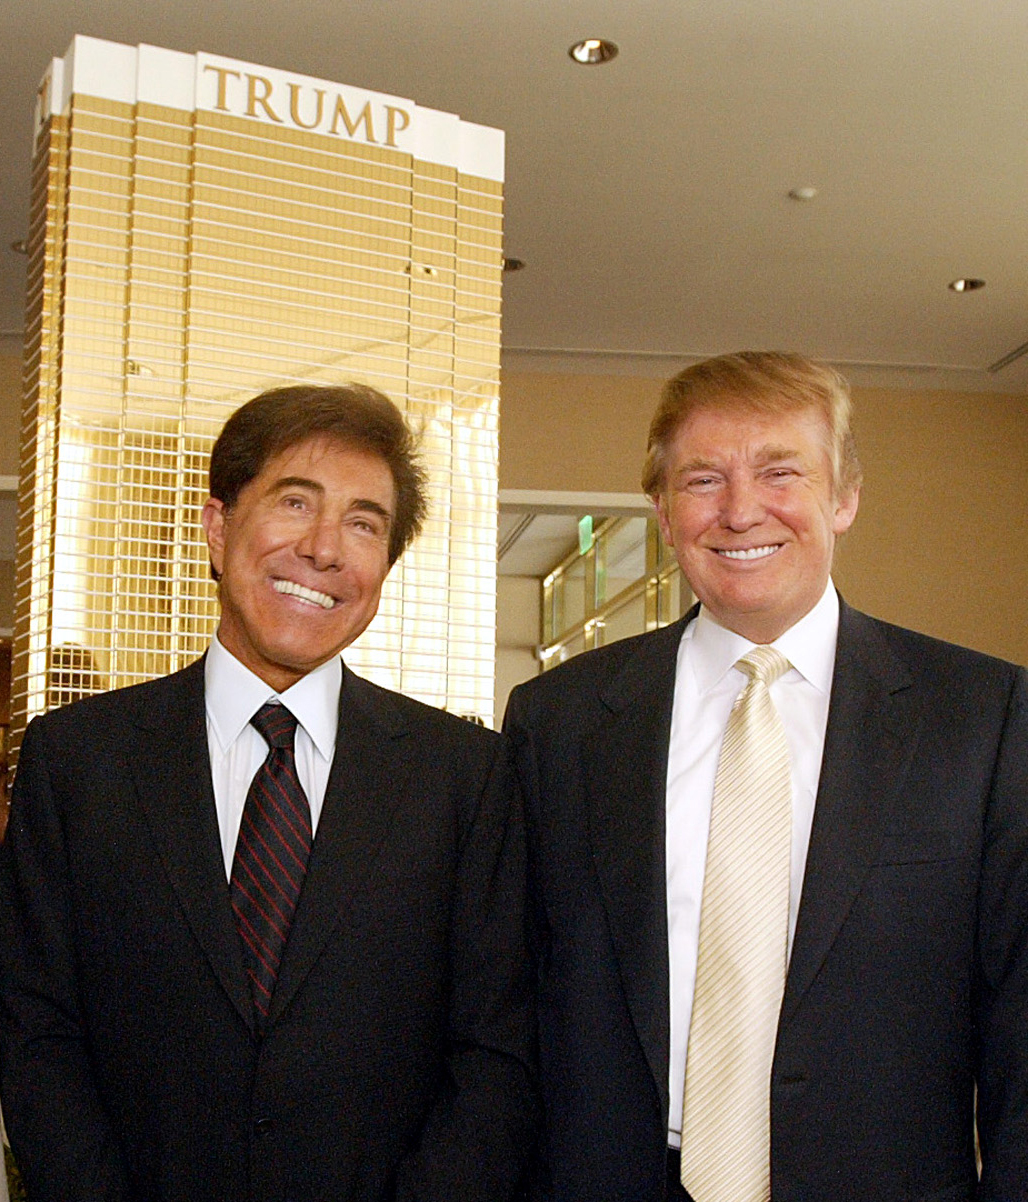 180126-steve-wynn-sexual-misconduct-donald-trump